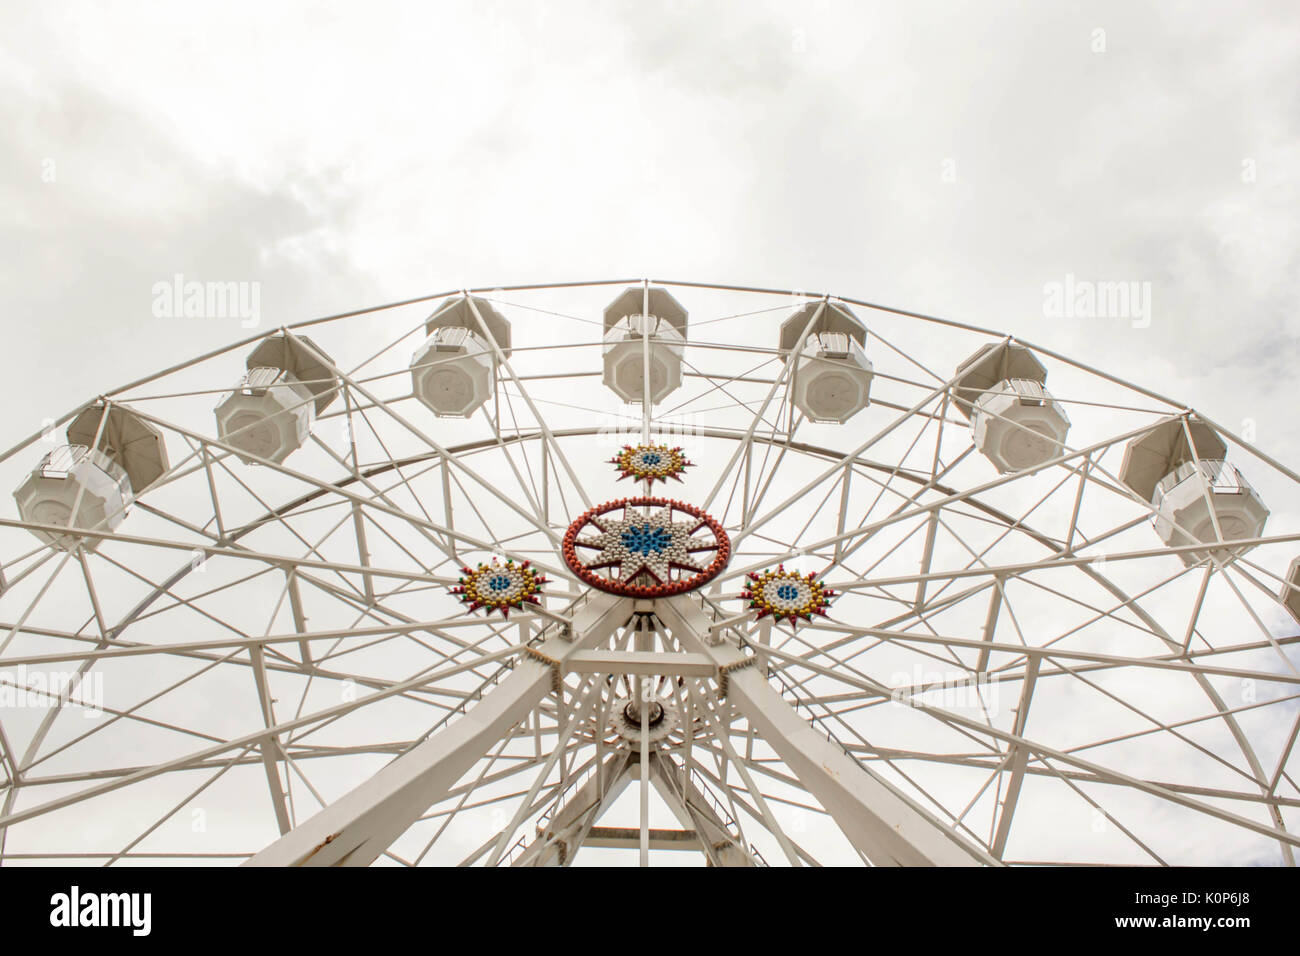 Circus Wheel Stock Photos Amp Circus Wheel Stock Images Alamy